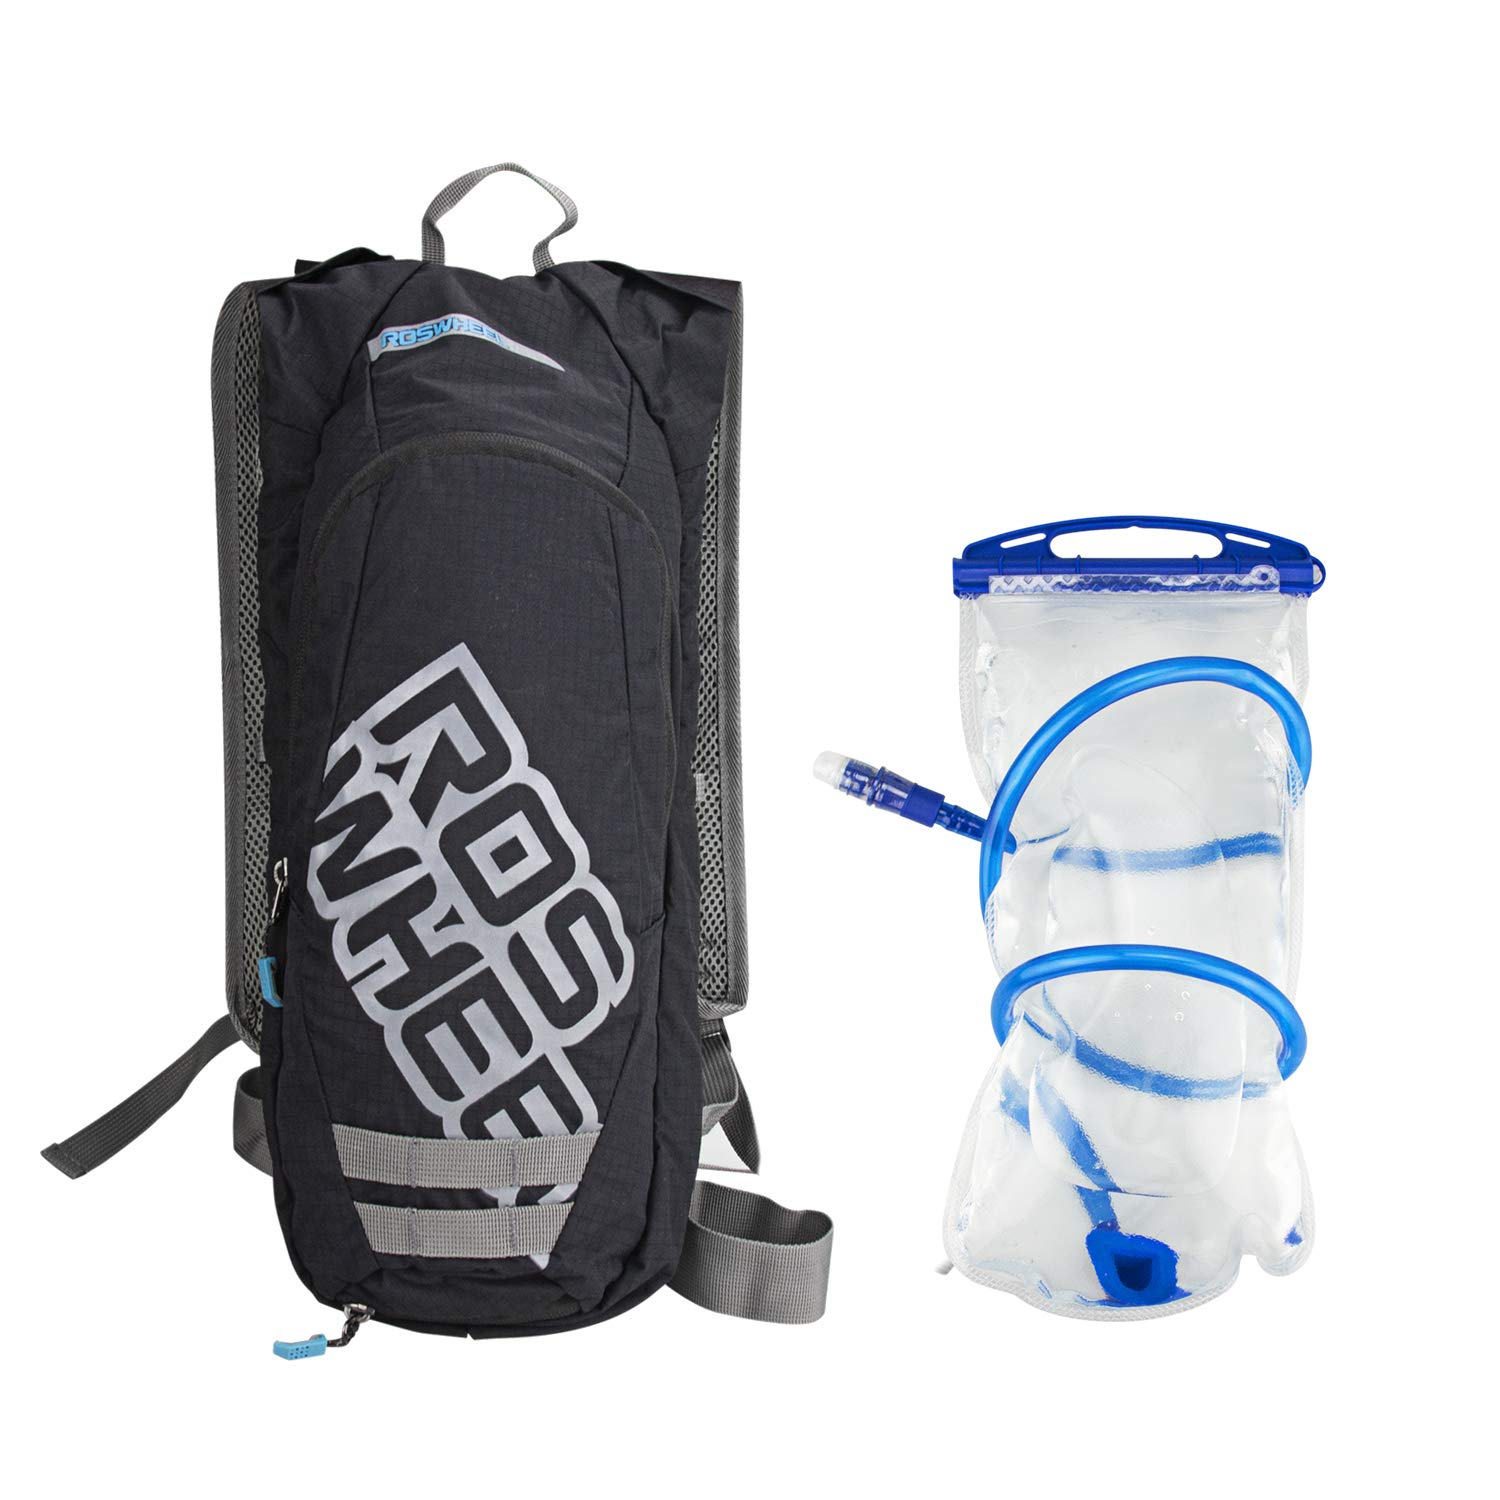 Allnice Backpack Water Bag 2 LTR Bladder Bag Hydration Pack 2.5L Cycling Pouch